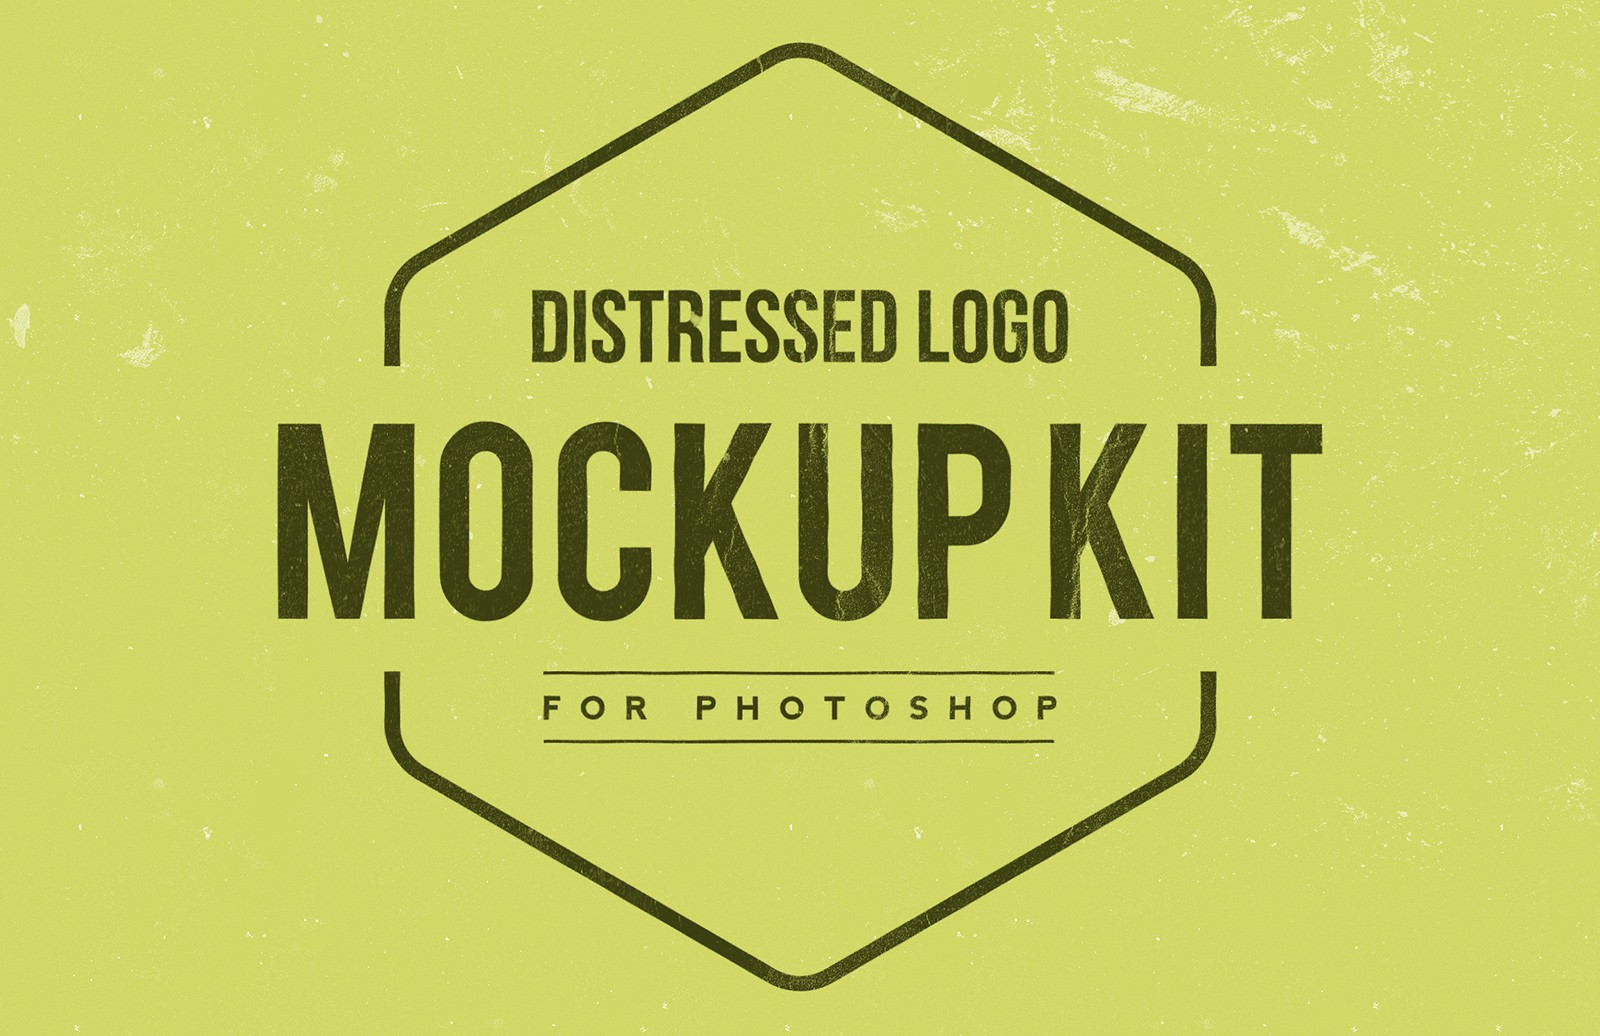 Distressed Logo Mockup Kit